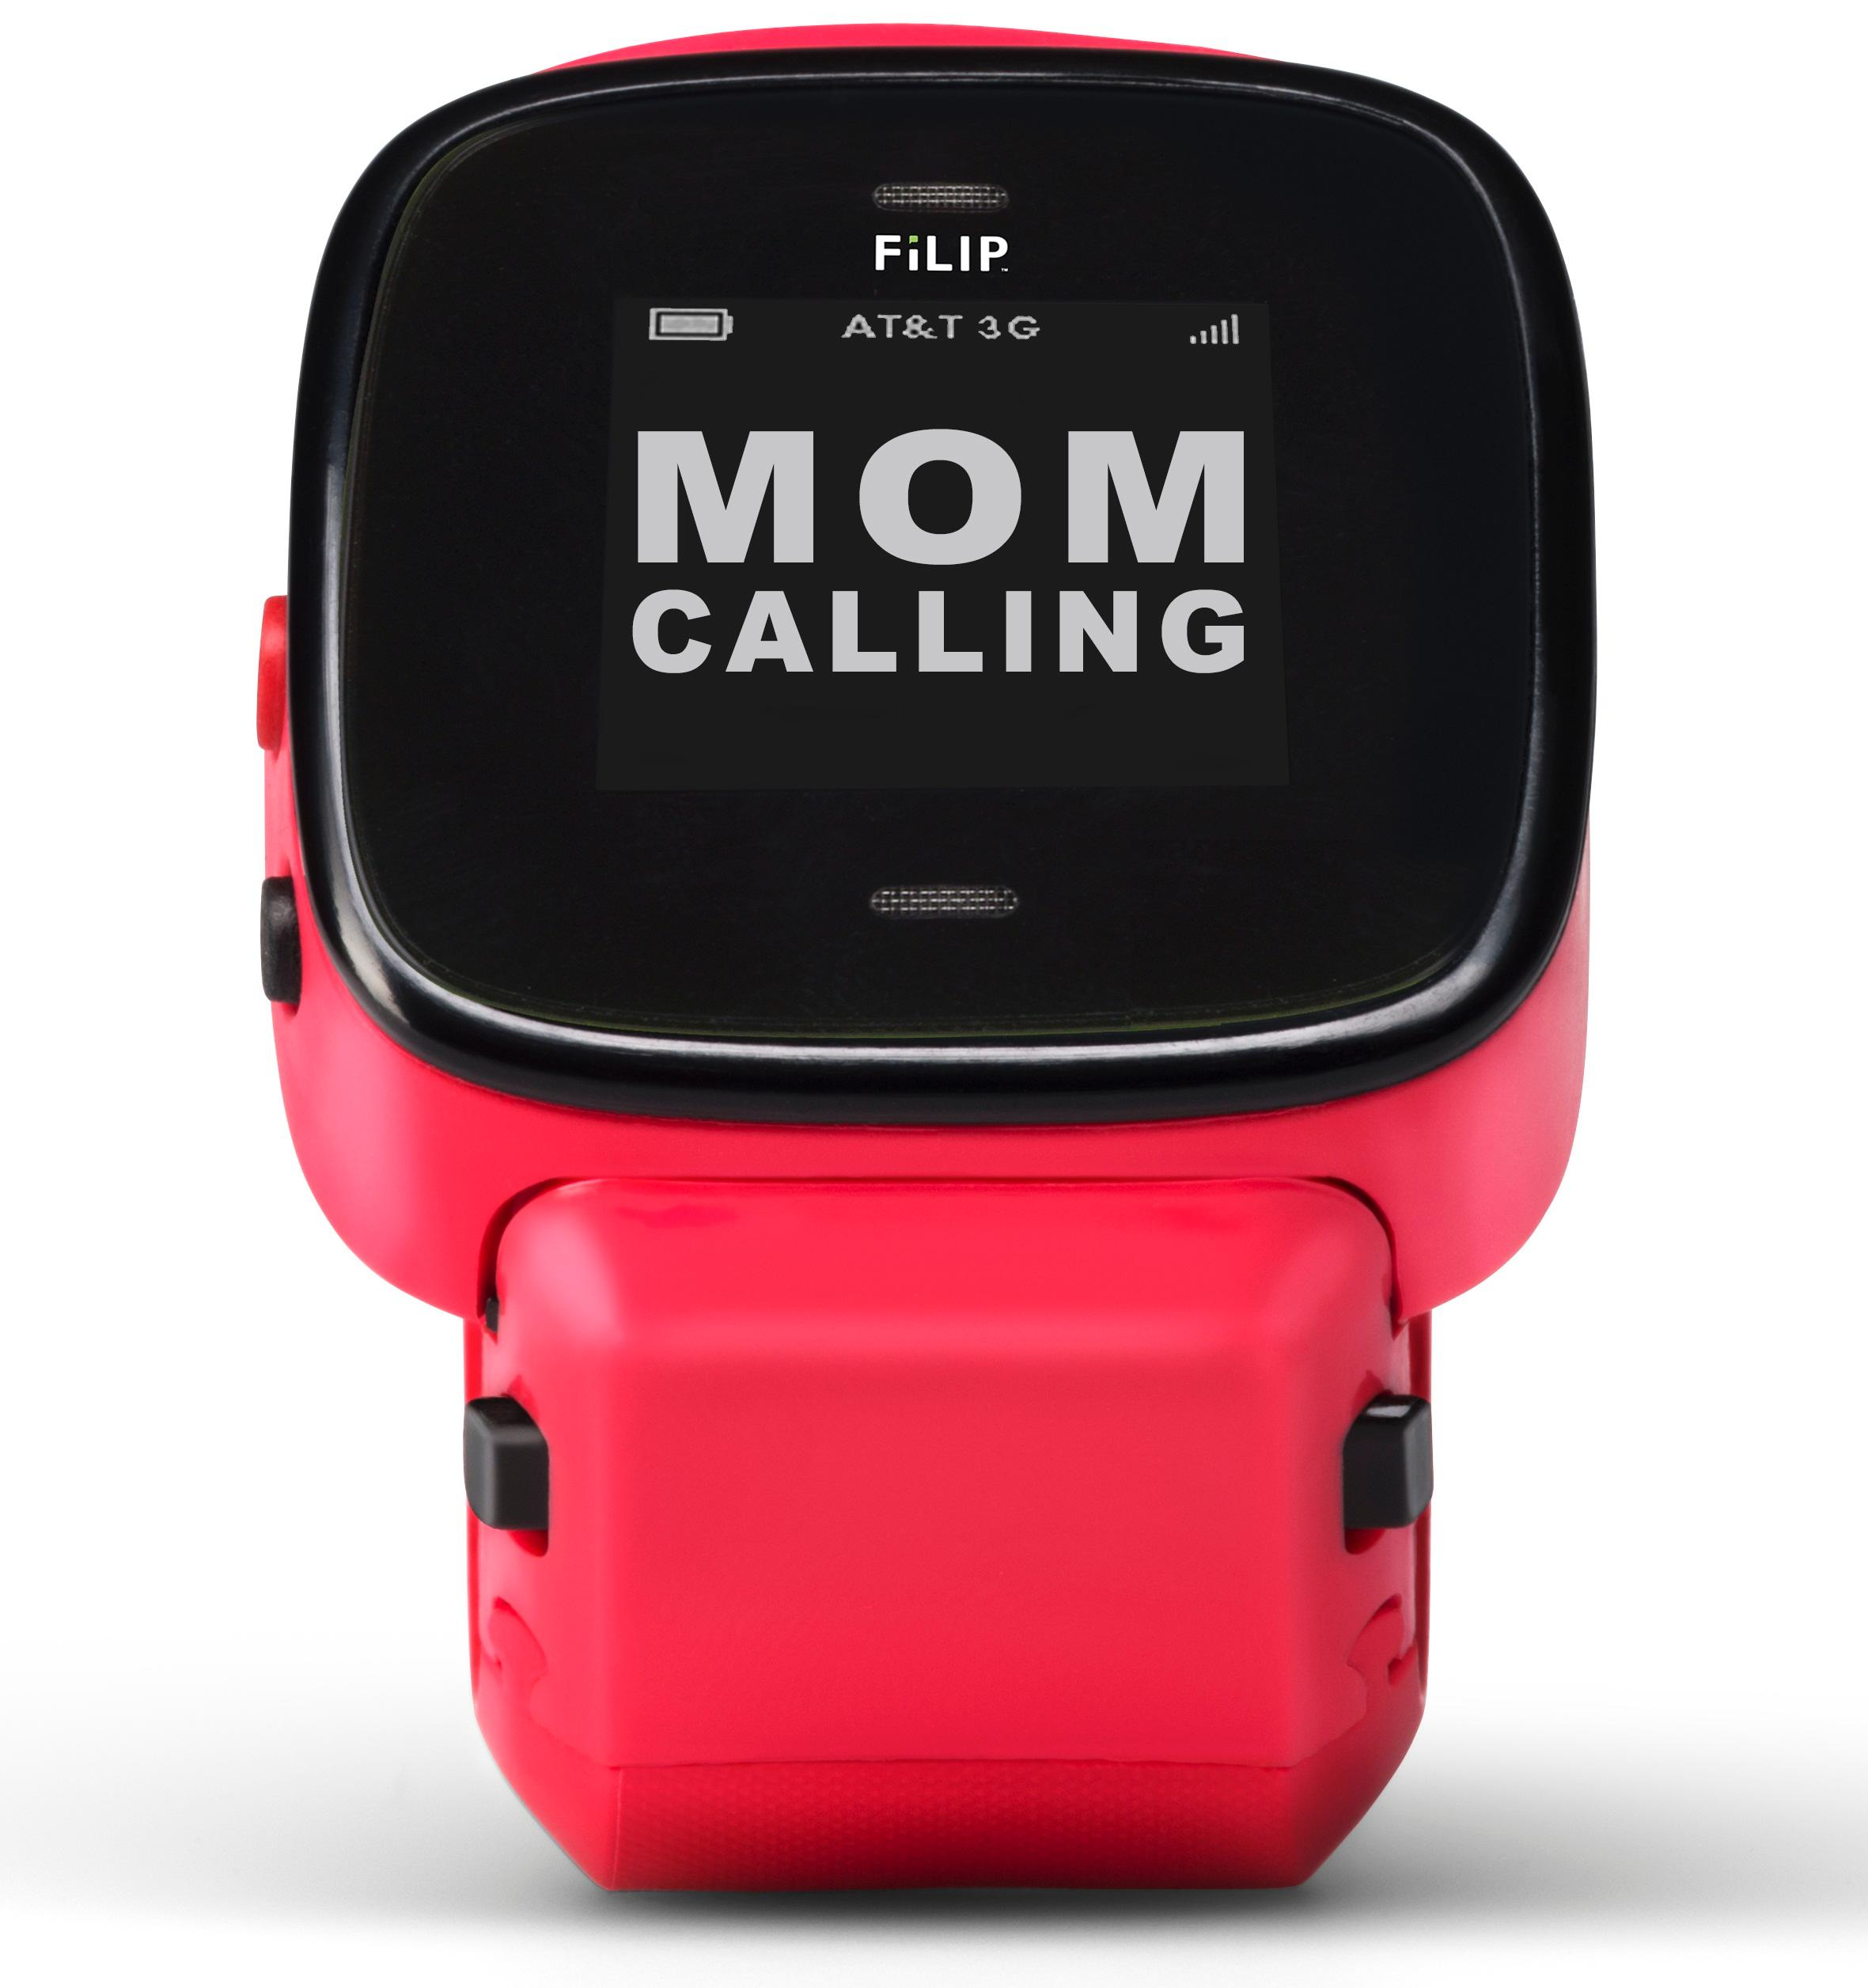 FiLIP 2 Smart Locator with Voice for Kids - Ezy4Gadgets